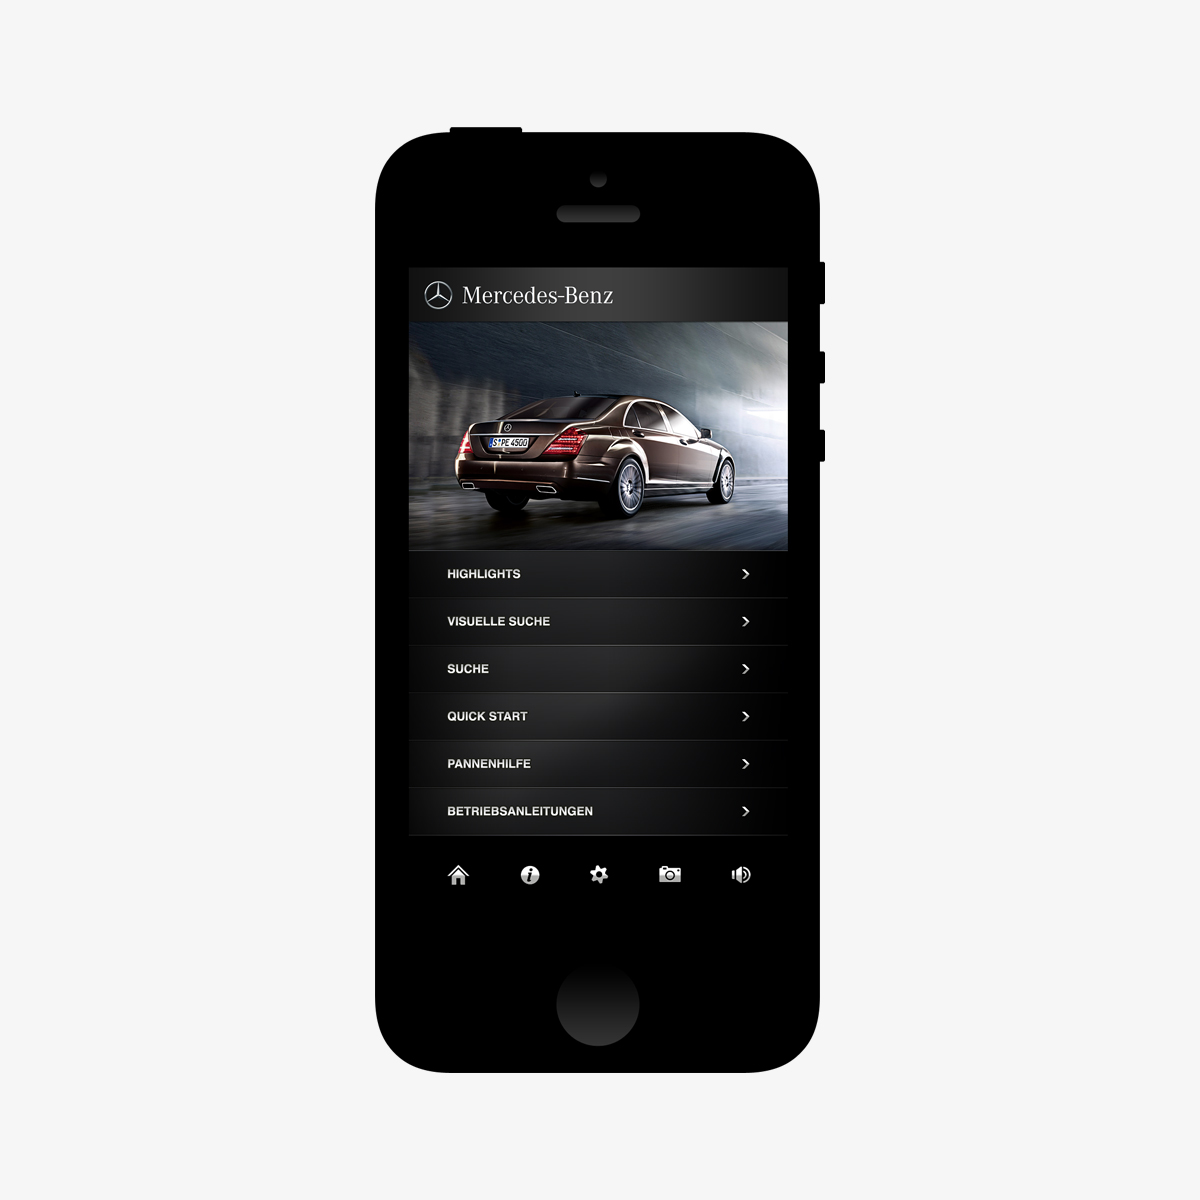 mercedes_benz_manual_app_03_by_think